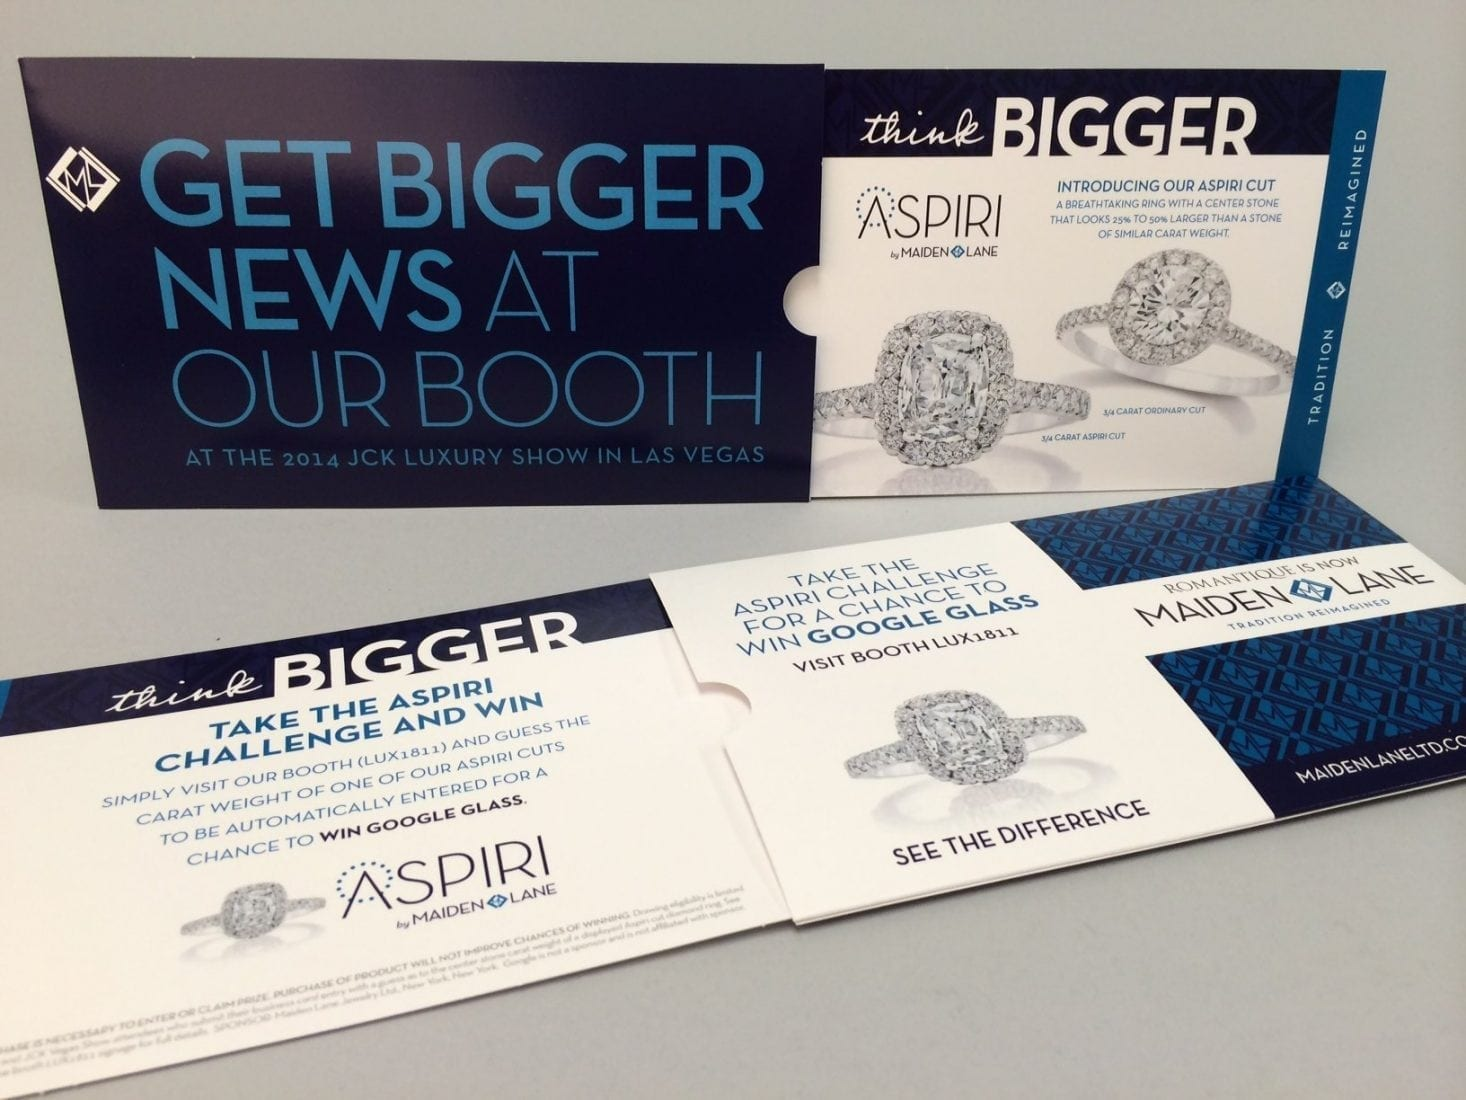 Marketing for a tradeshow in 3 stages